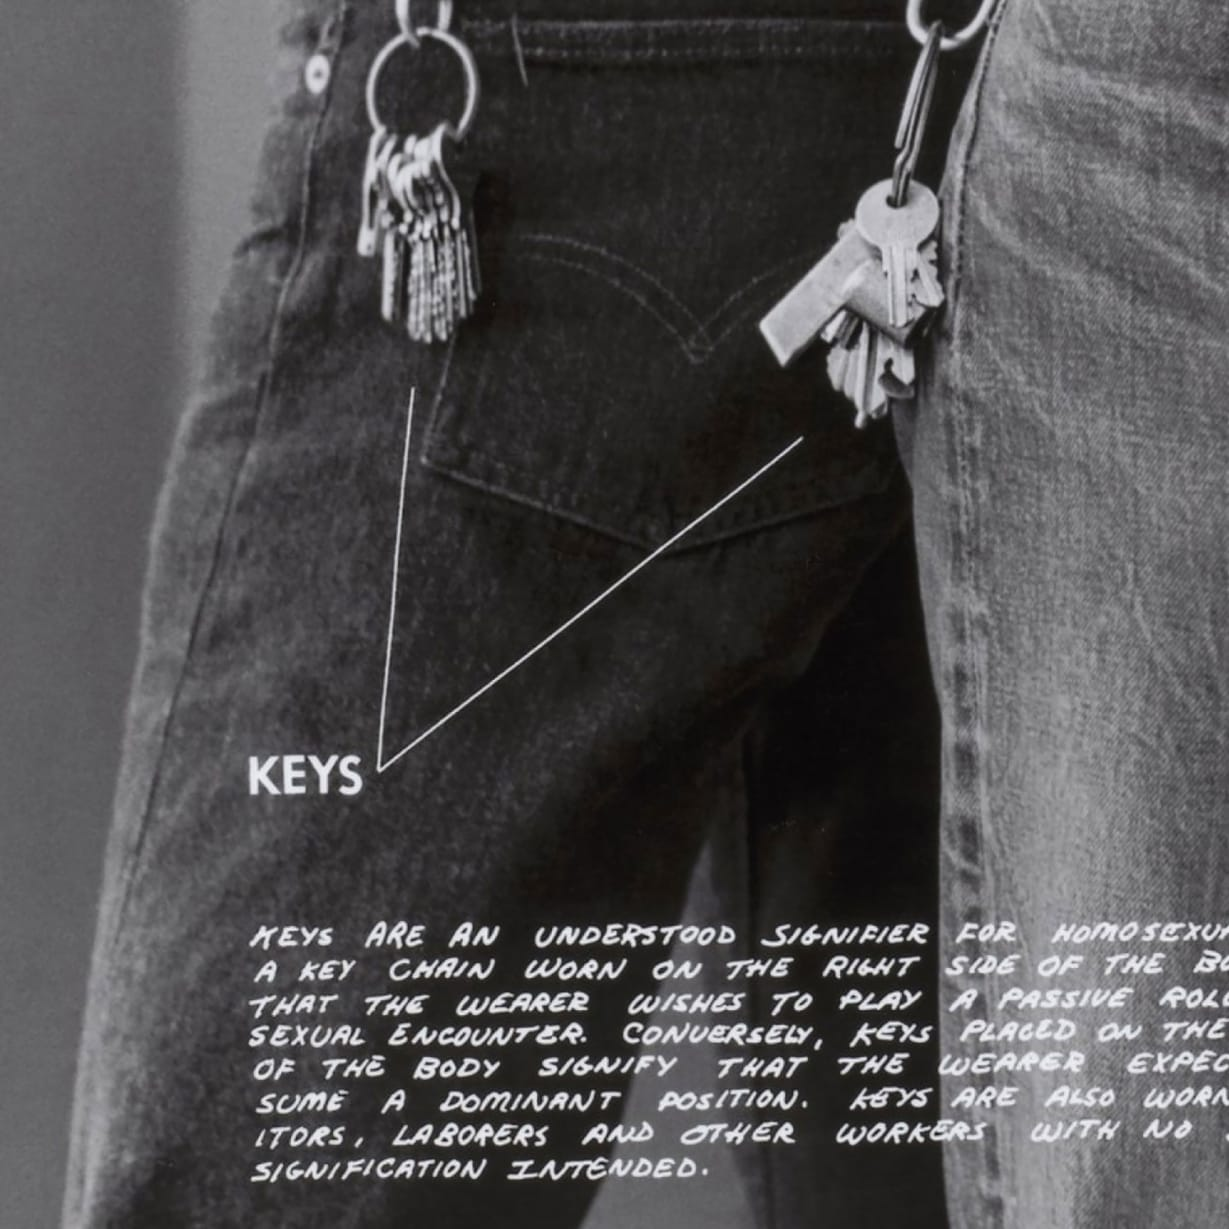 The legs of two people wearing tight jeans with an annotation on their keys.